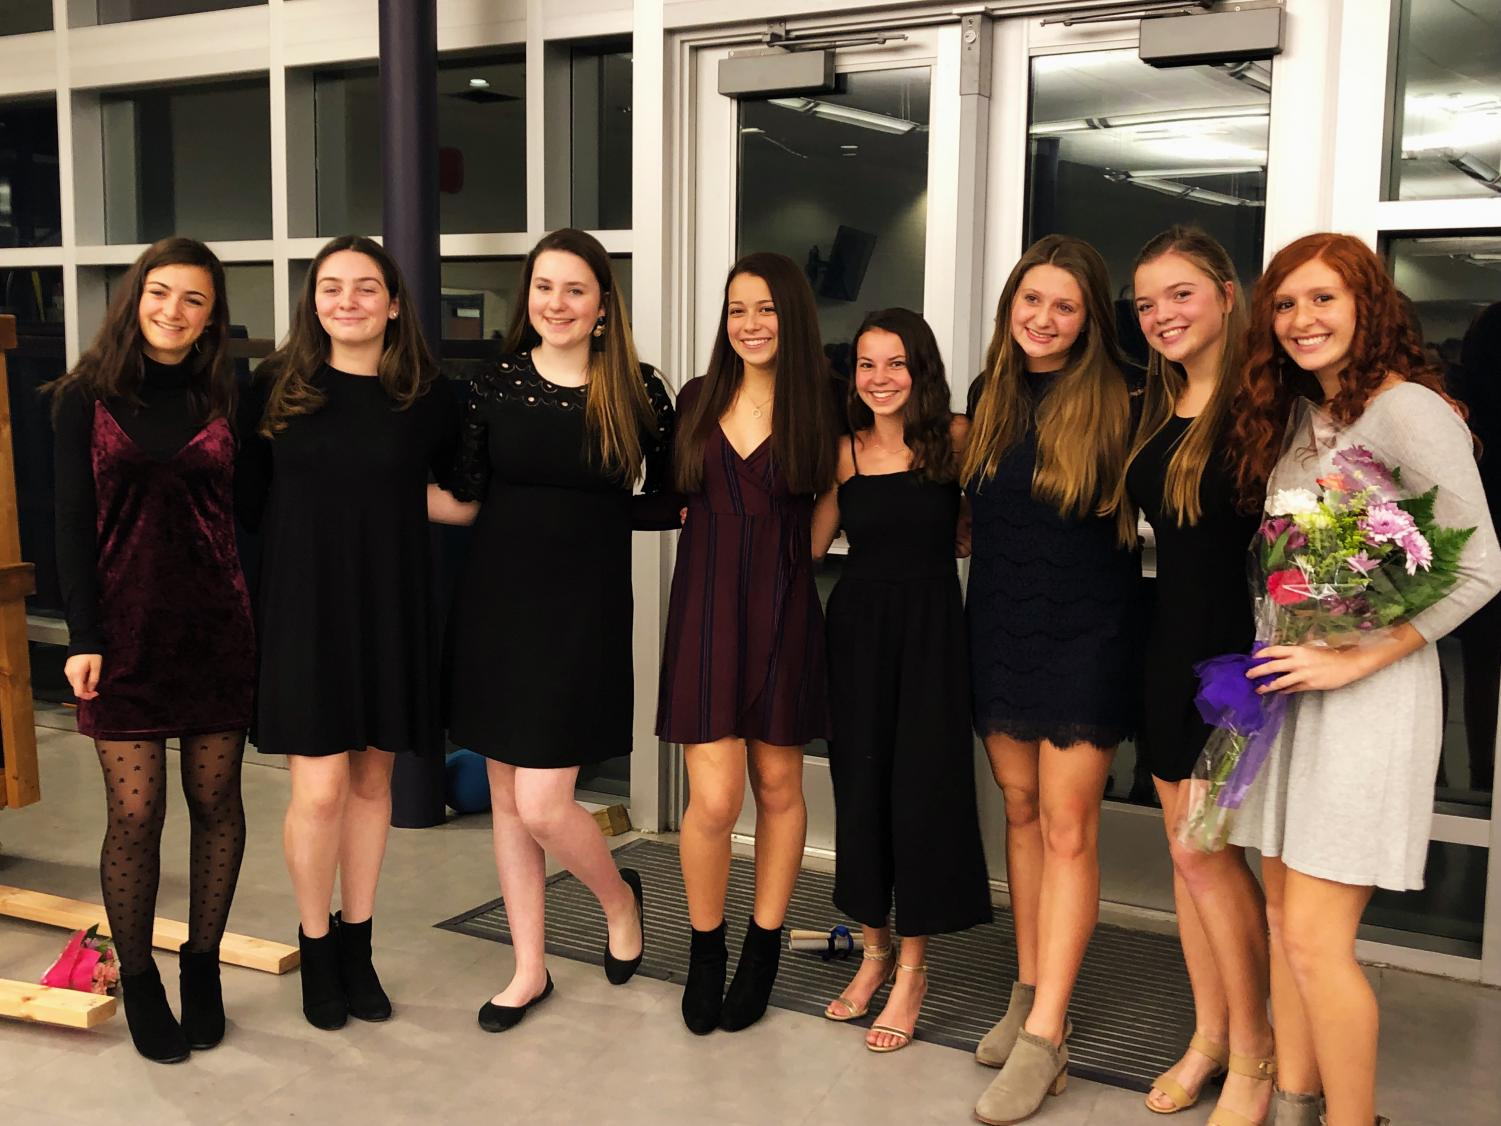 (Left to right) Juniors Bella Matuch of Spring Lake, Abby Tellechea of Monmouth Beach, Lauren Tarigo of Sea Girt, Juliana Greenwood of Wall, Isabella Antoon of Oceanport, Bella Reilly of Avon, Meredith Prud'homme of Ocean, and Mary Eknoian of Wall.